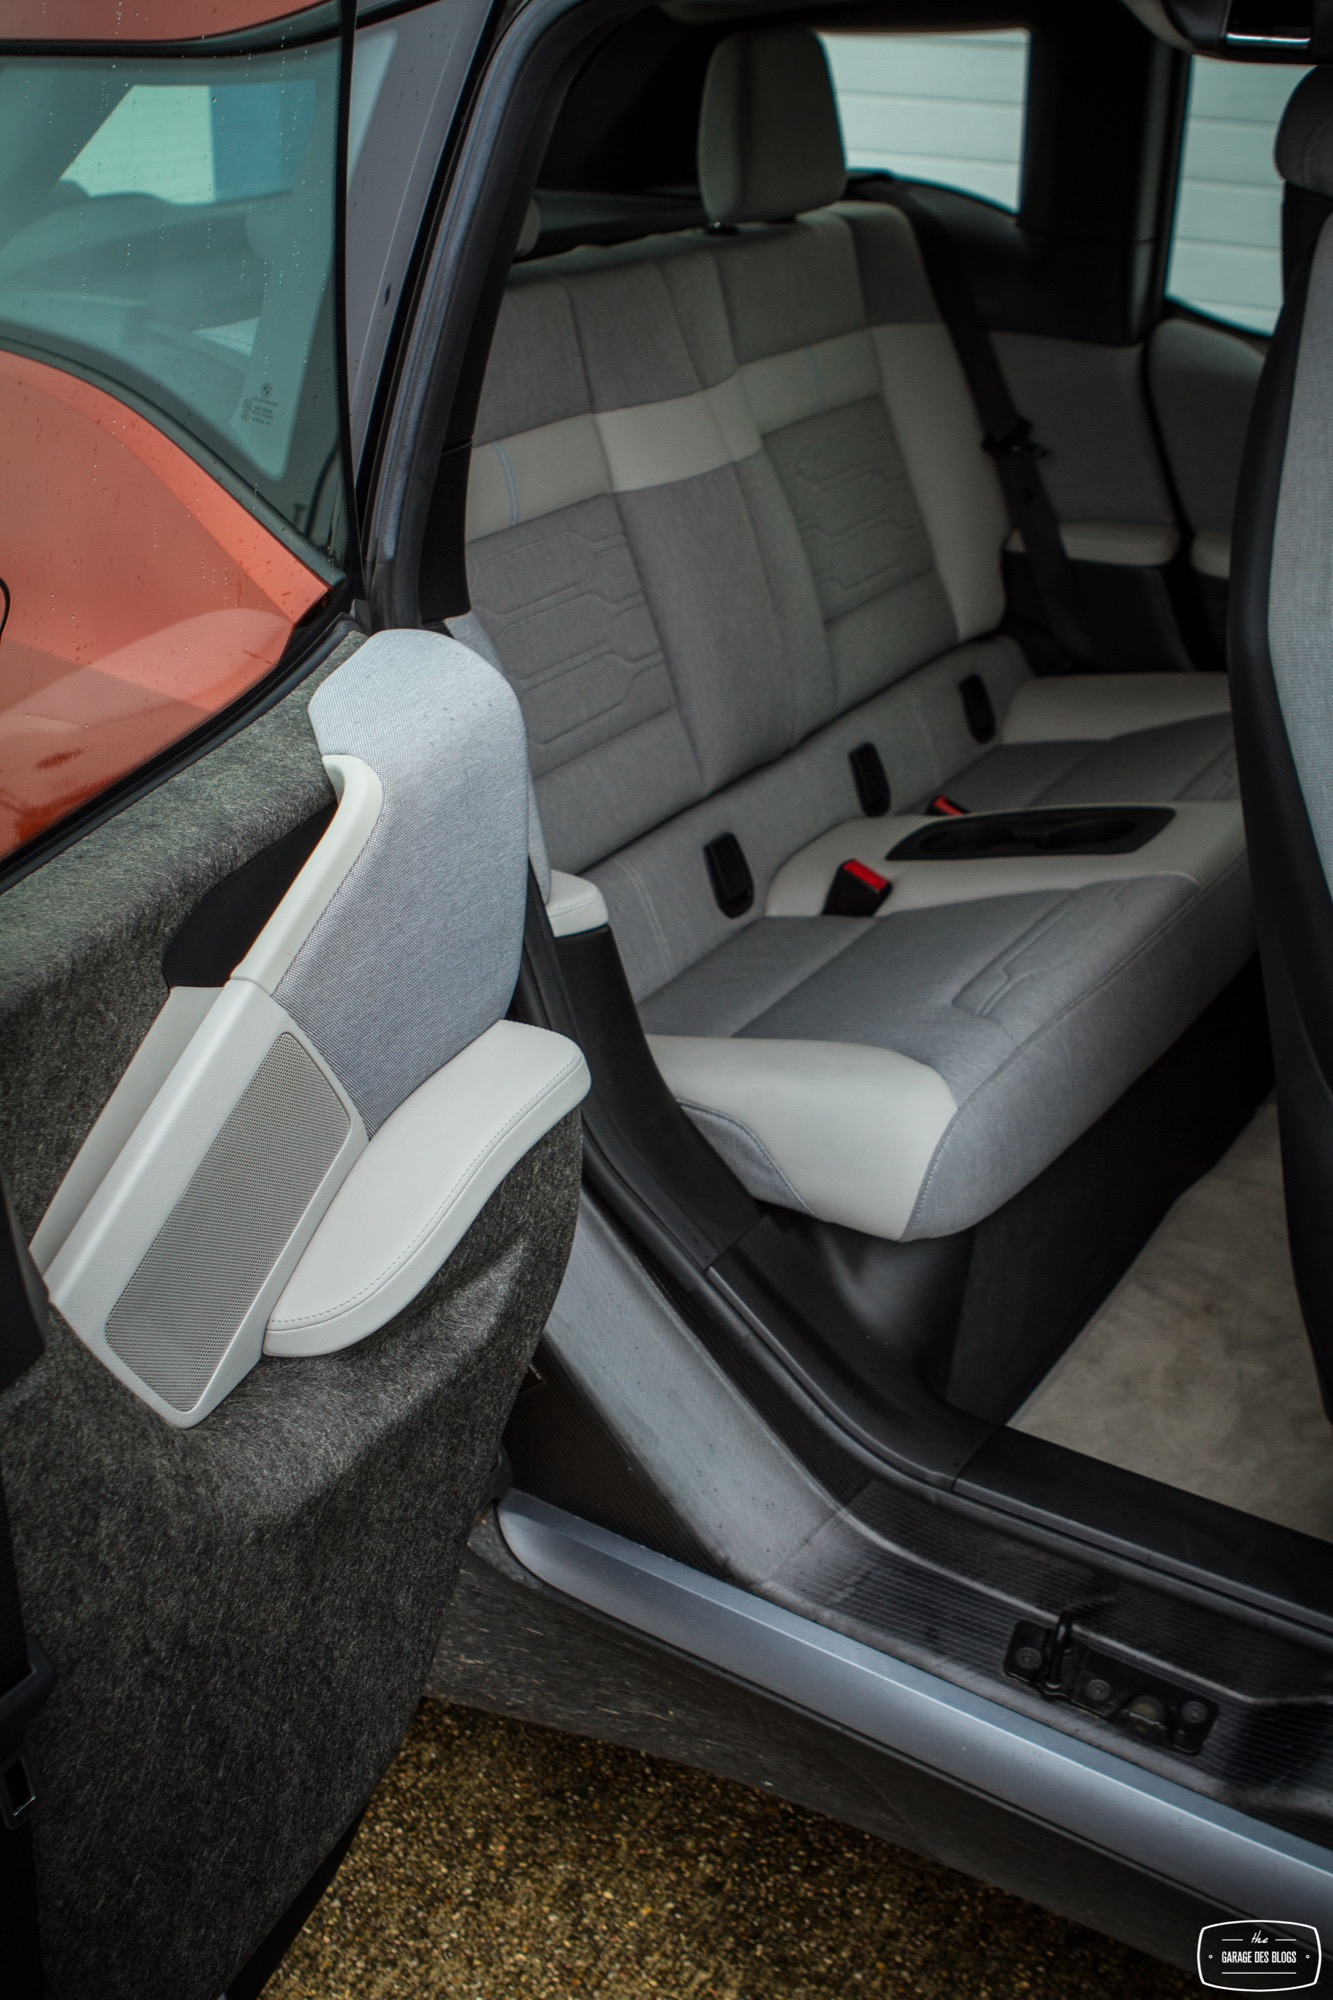 Bmw i3 interieur 20 le blog de viinz for Interieur i3